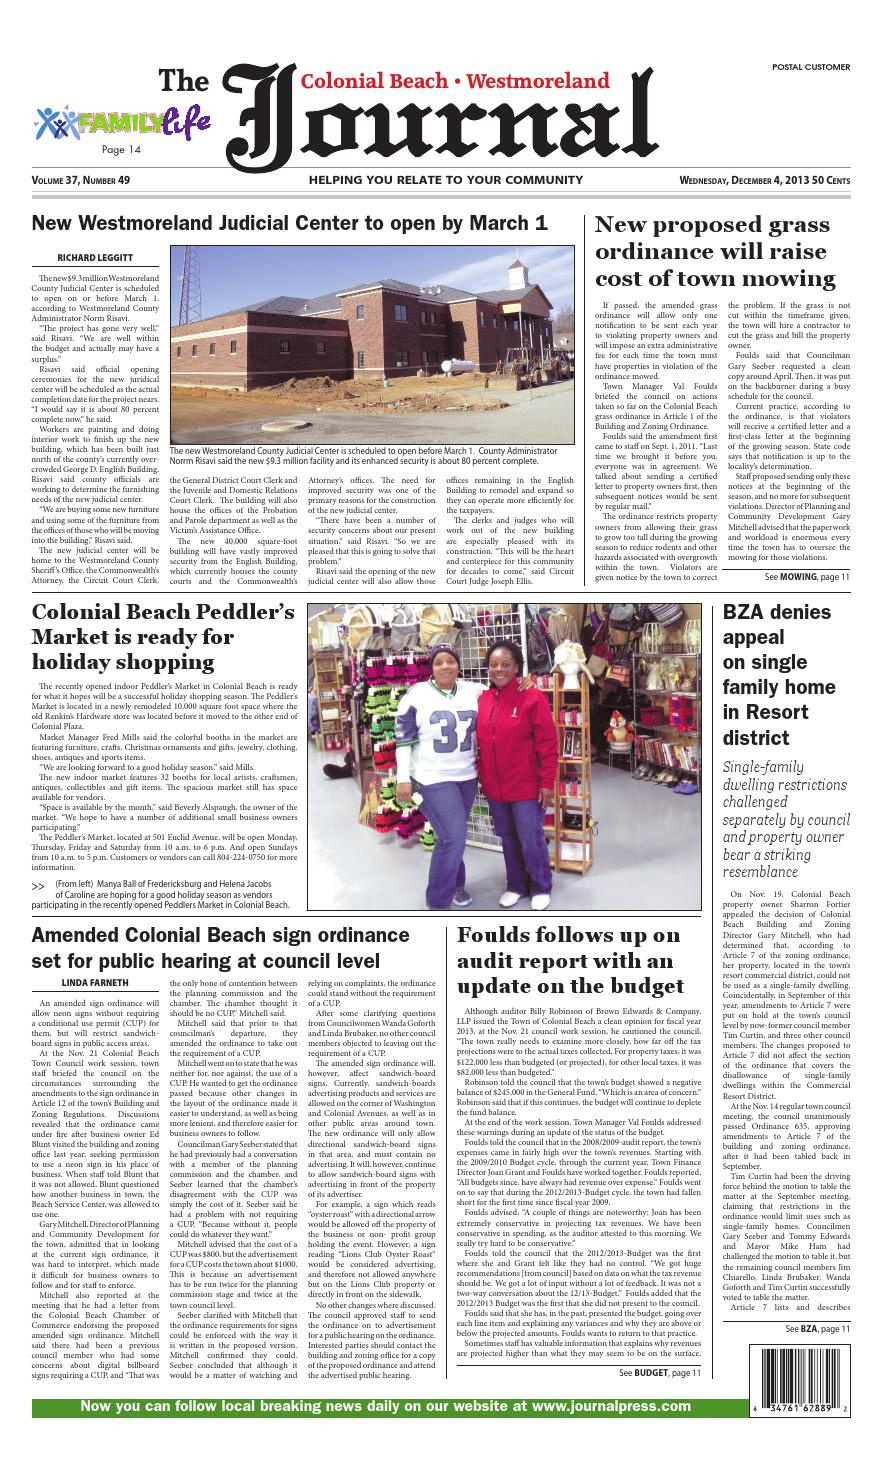 Dec 4 2013 Colonial Beach Westmoreland County Virginia Journal By Journalpressinc Issuu